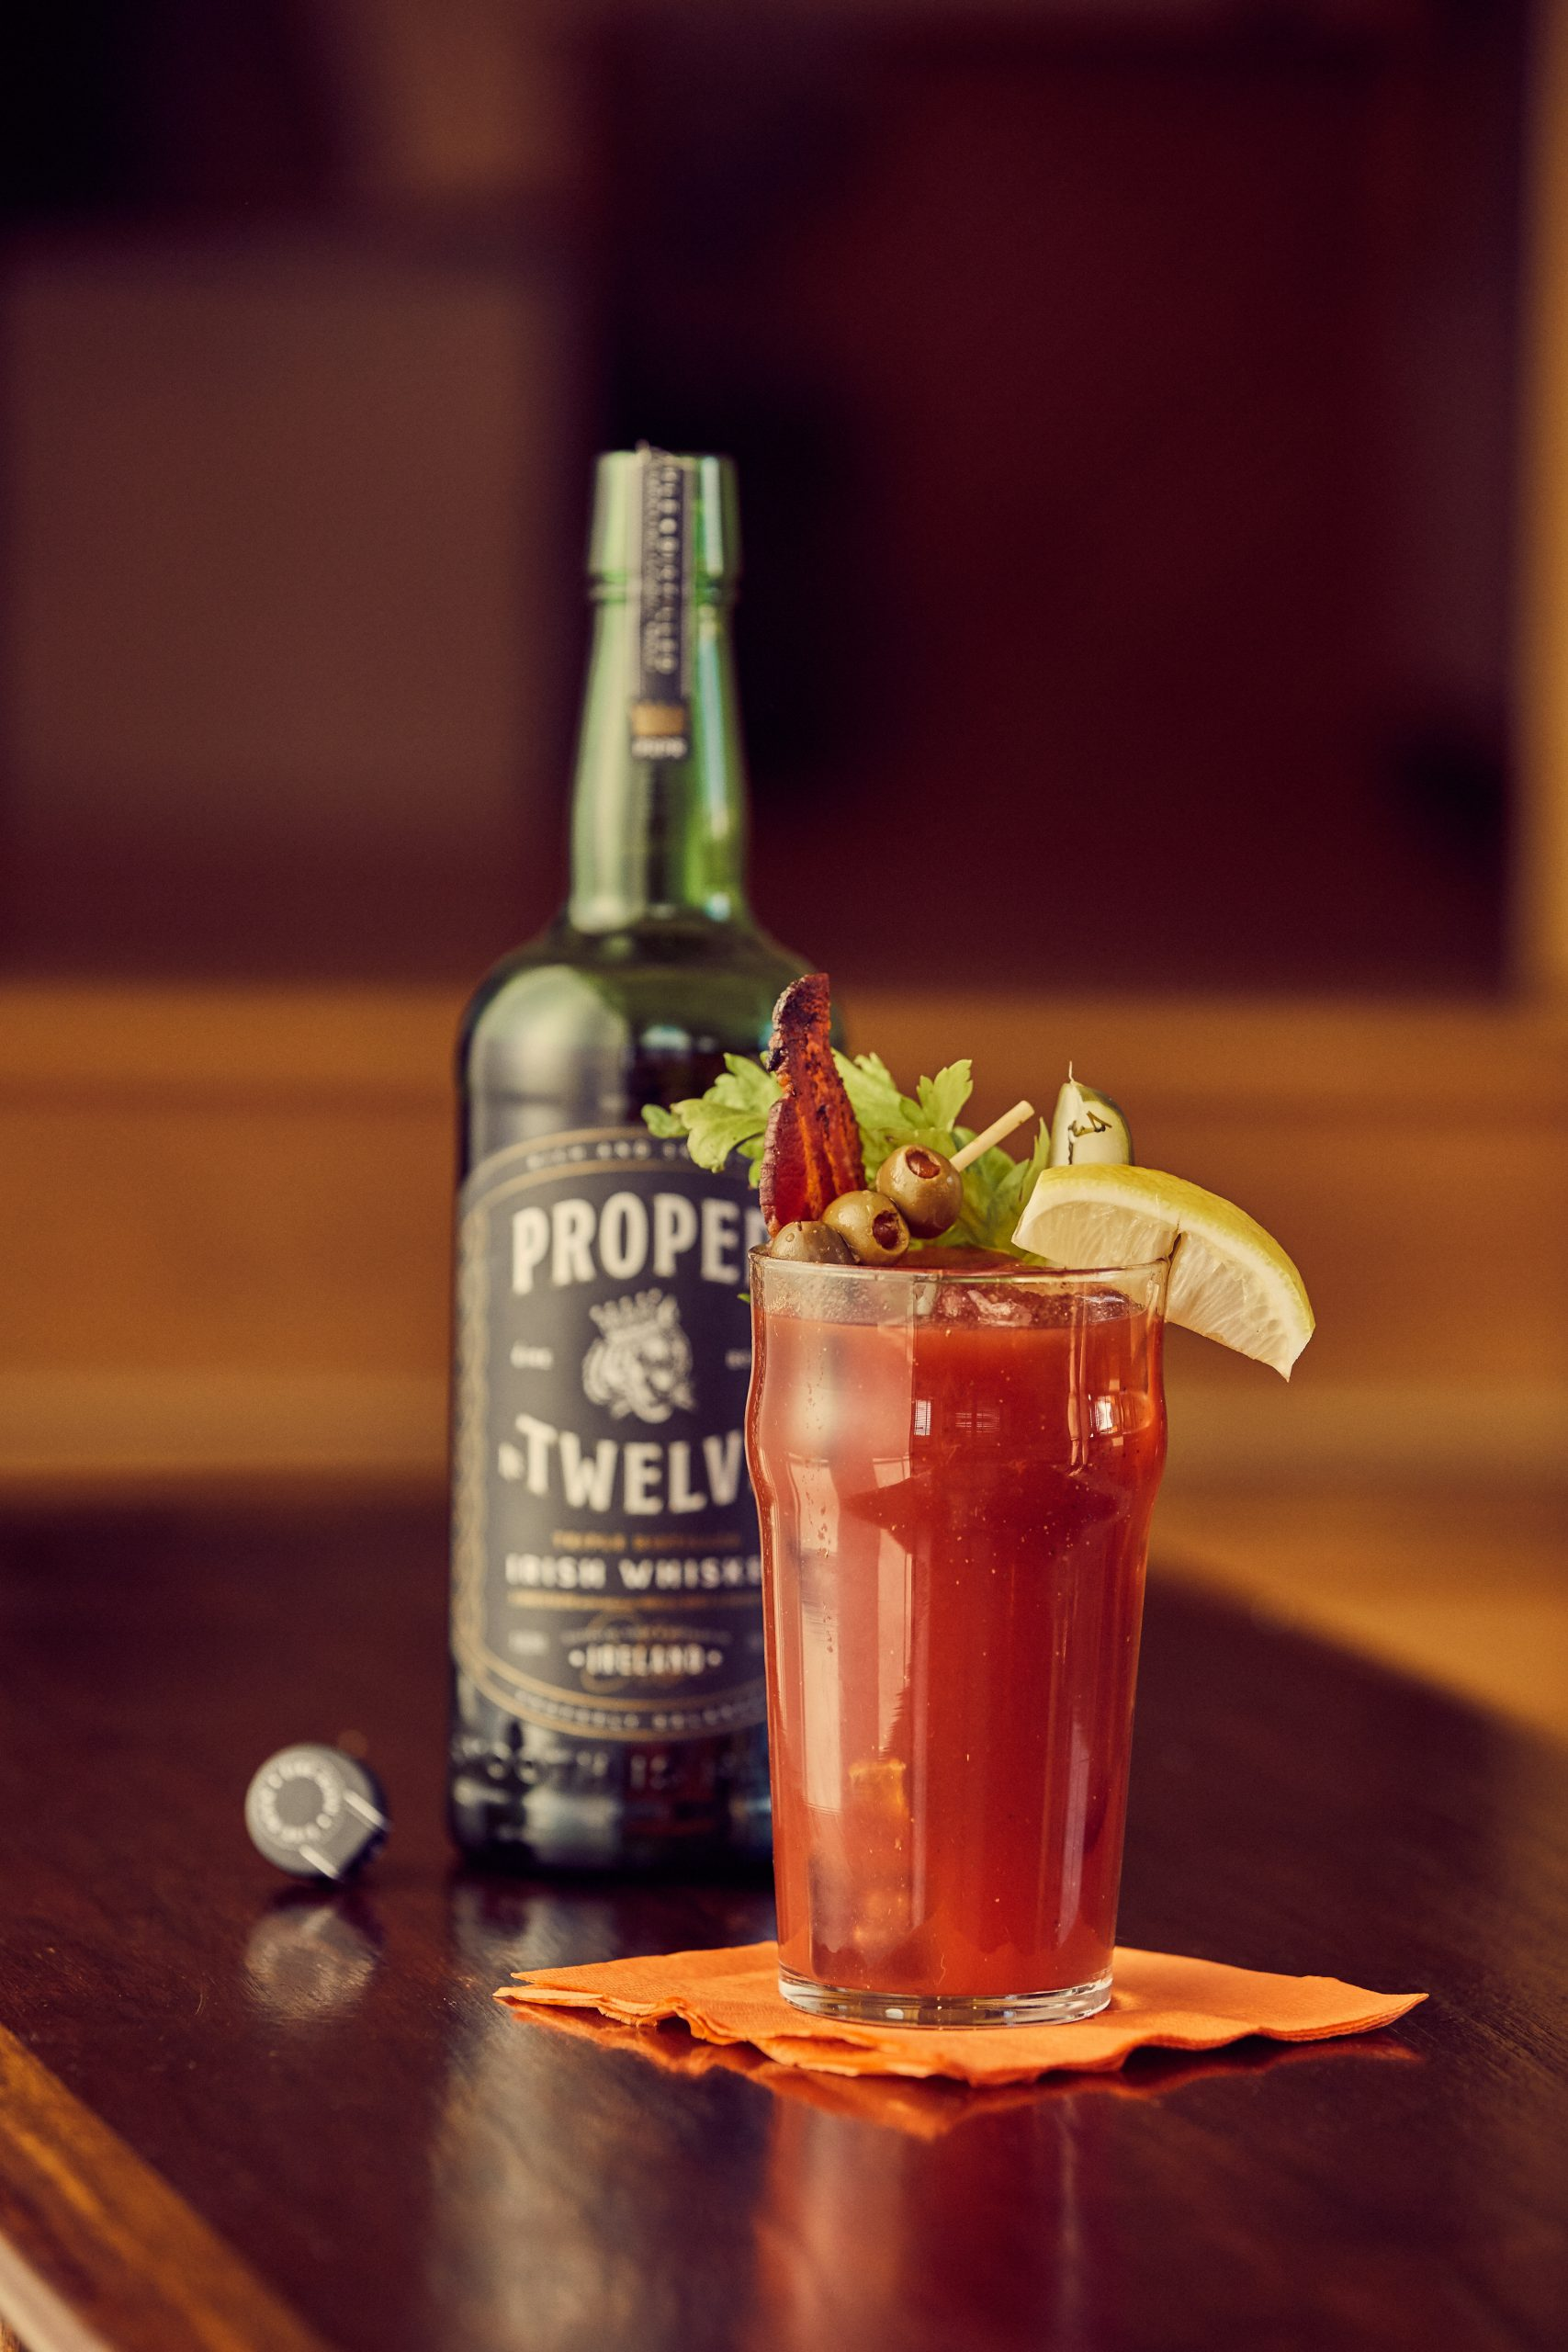 Proper Bloody Mary, Father's Day